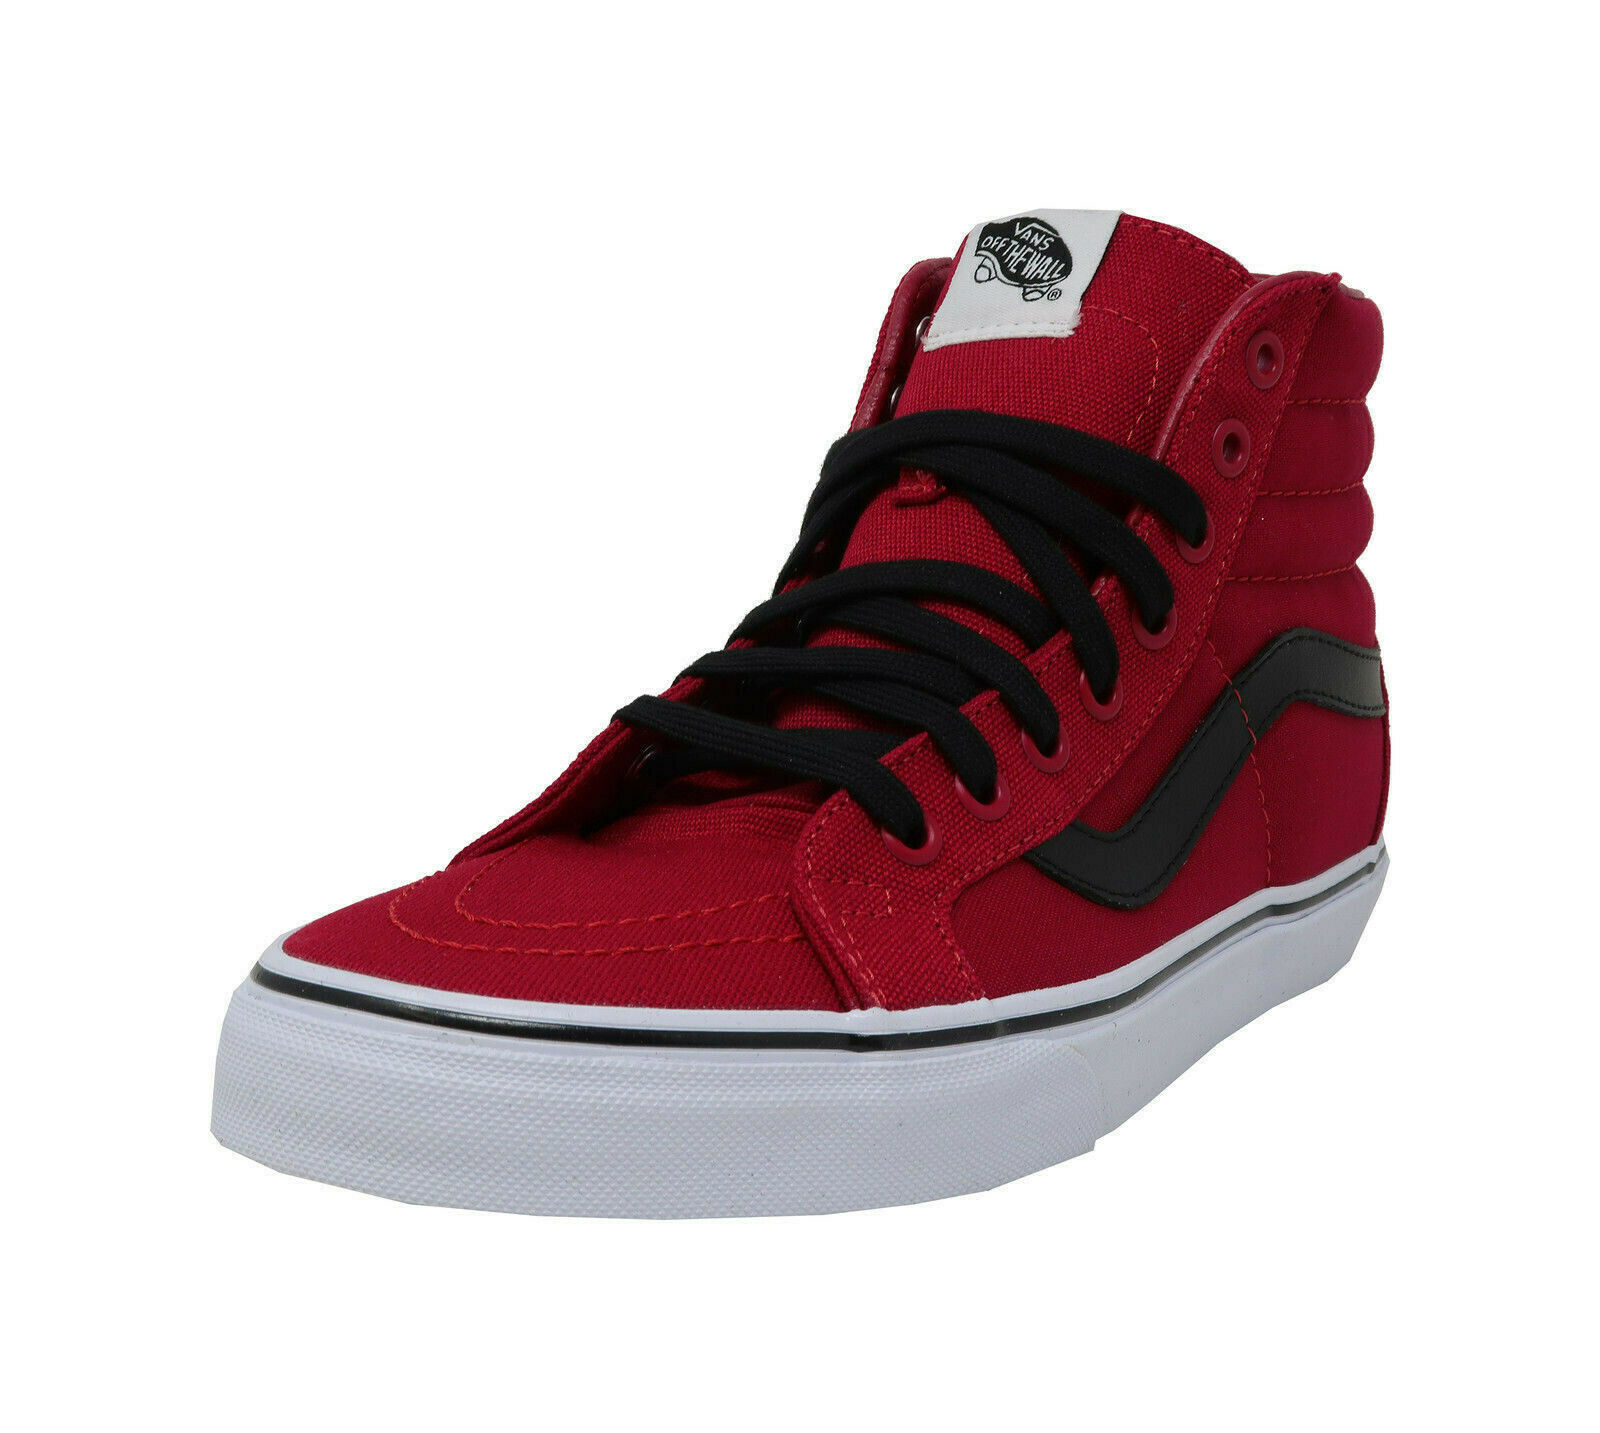 black vans with red laces \u003e Clearance shop